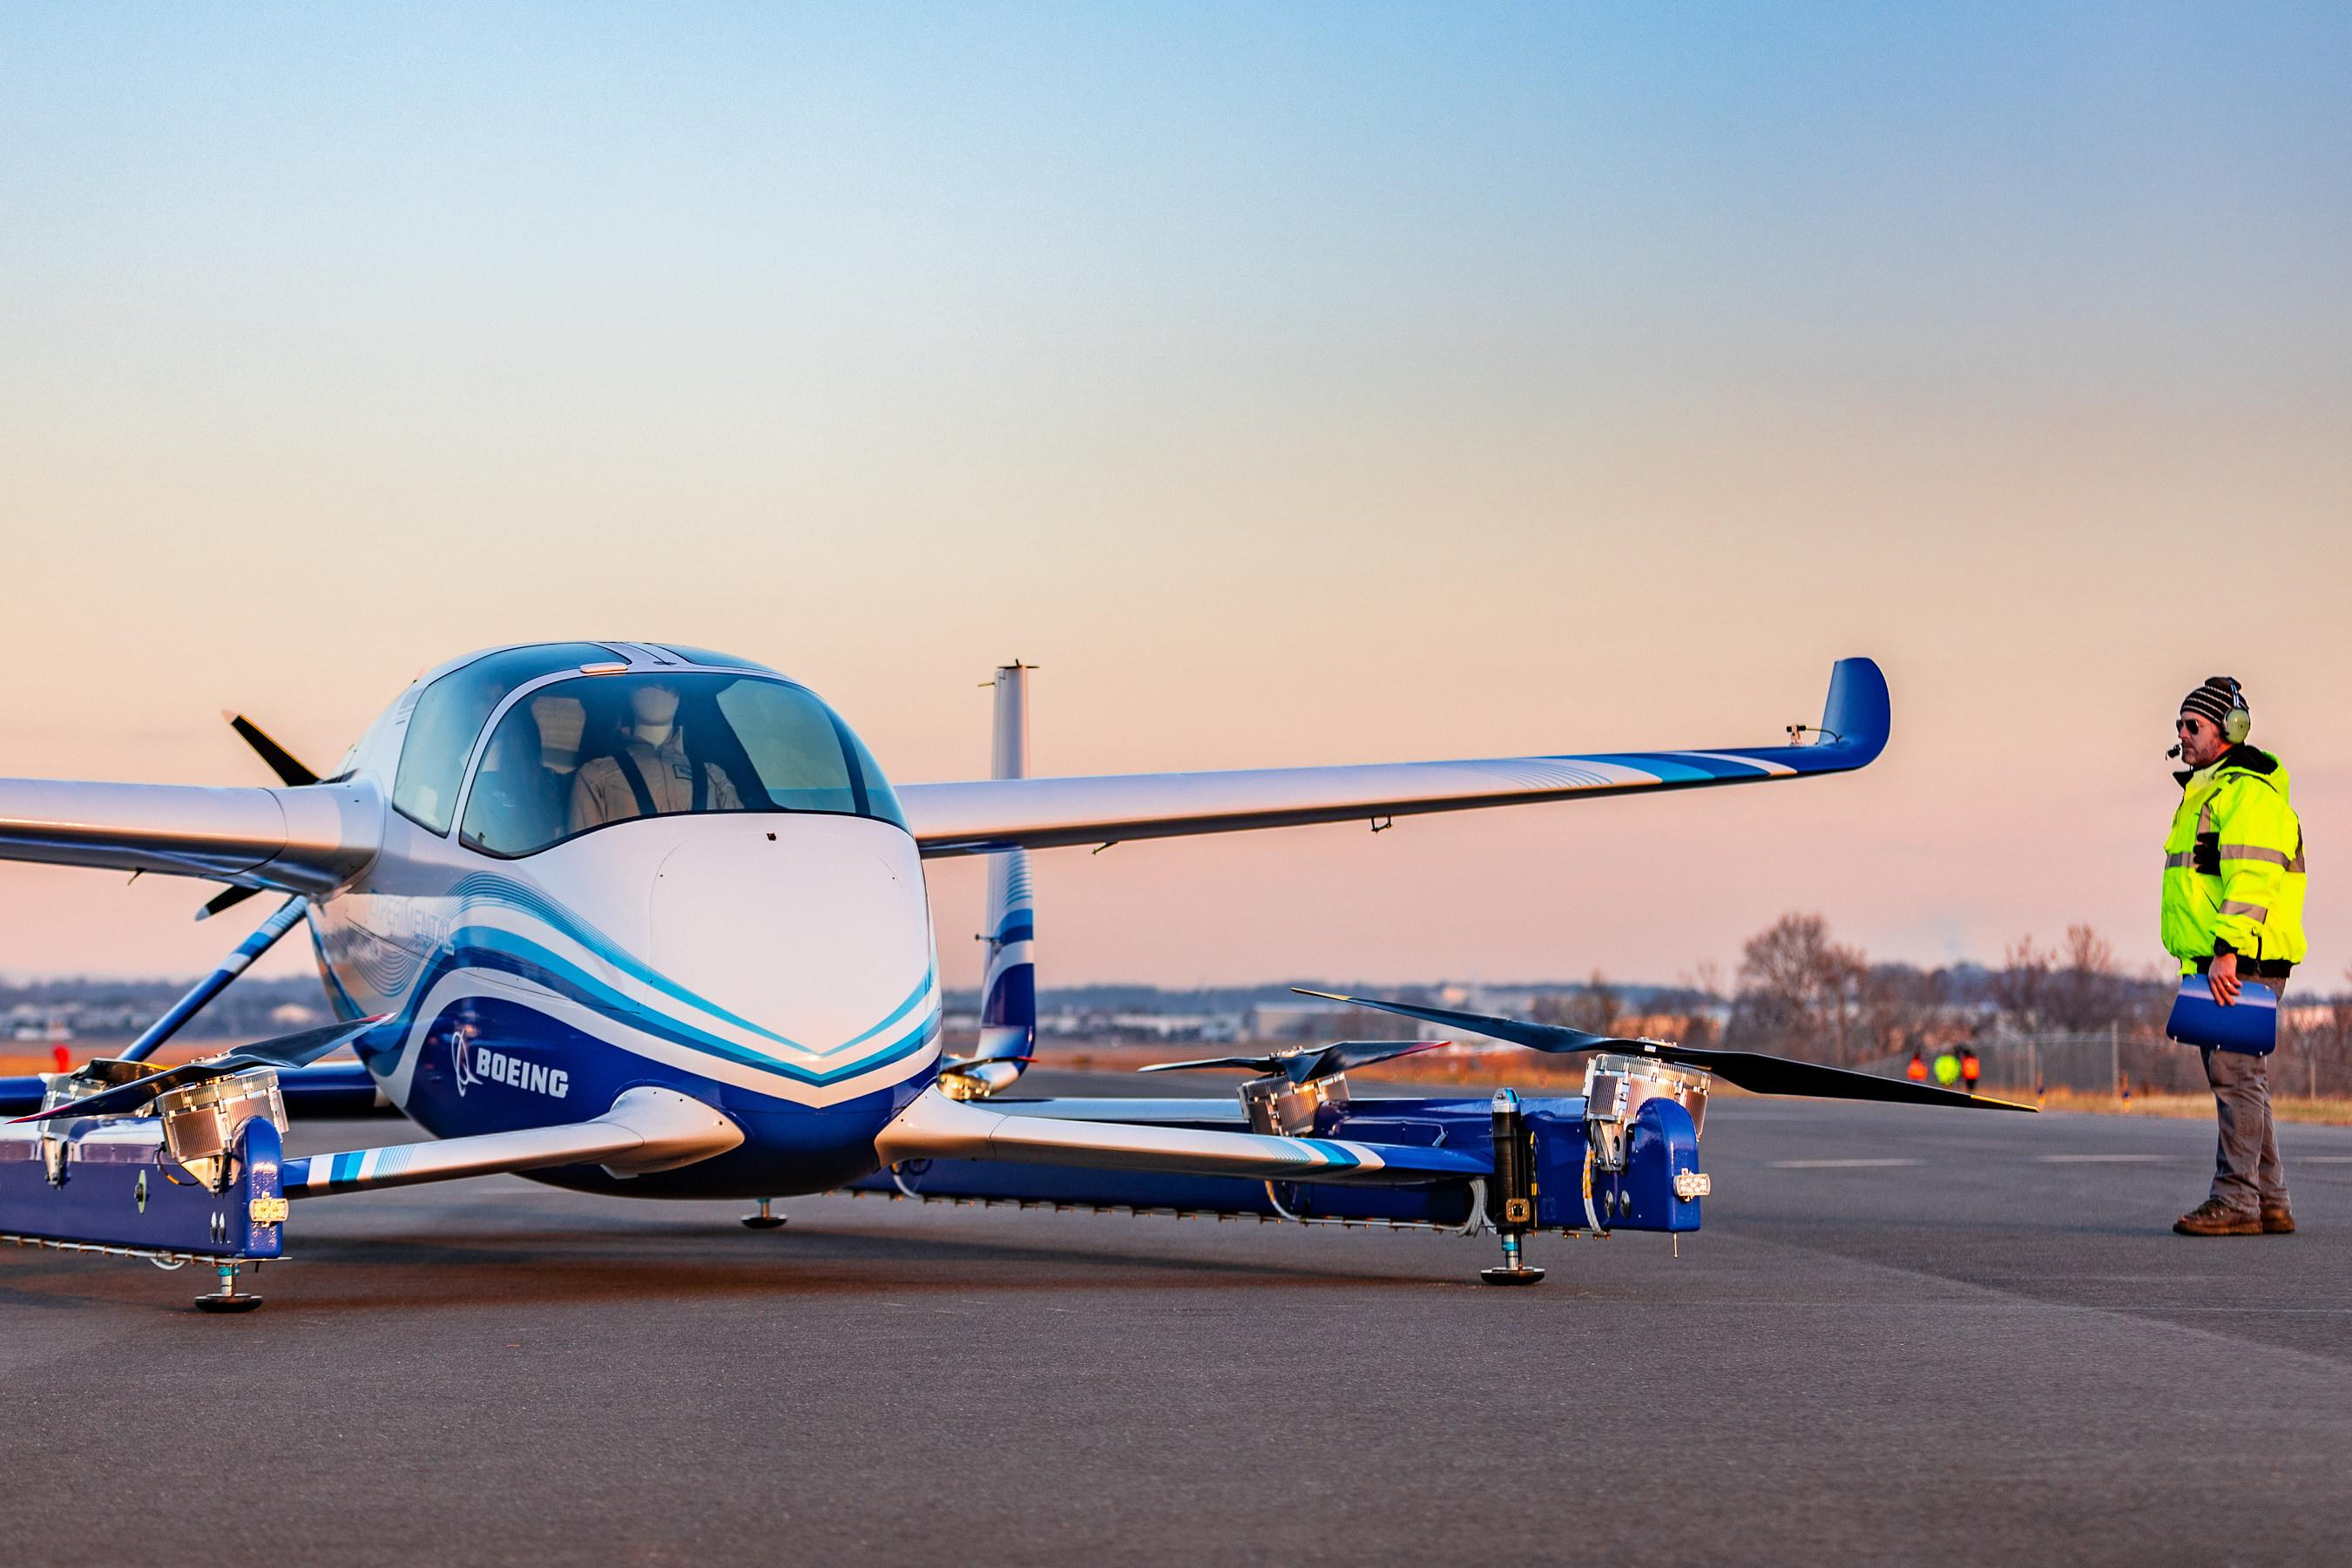 Boeing Said Wednesday Its Prototype Flying Car Part Of A Project Aimed